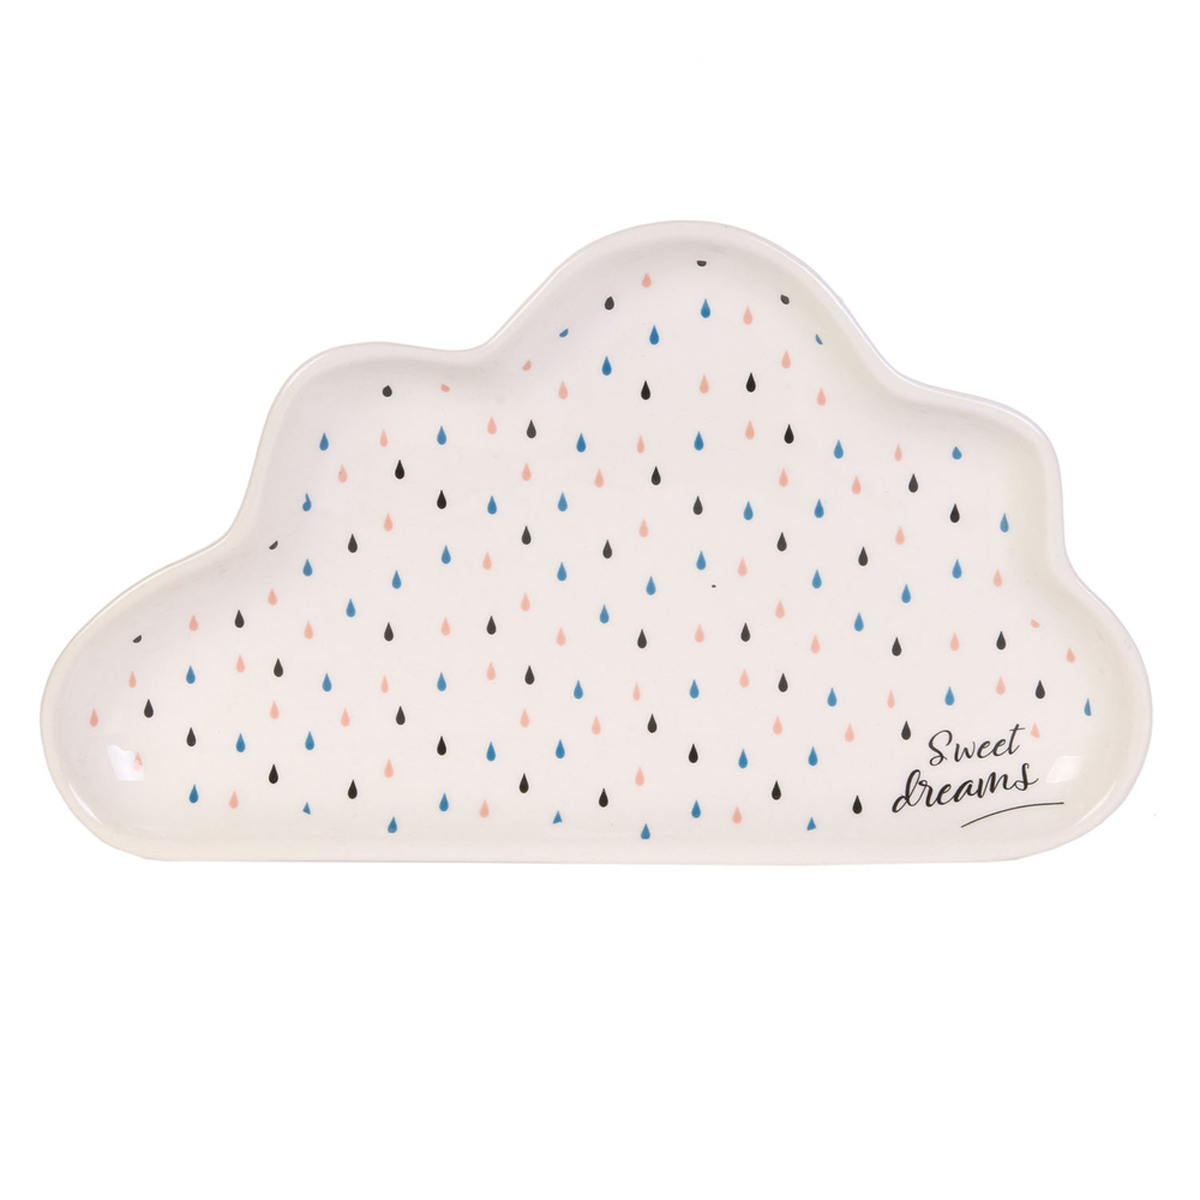 Coupelle vide-poches céramique \'Nuage\' multicolore (Sweet dreams) - 24x14 cm - [A1711]